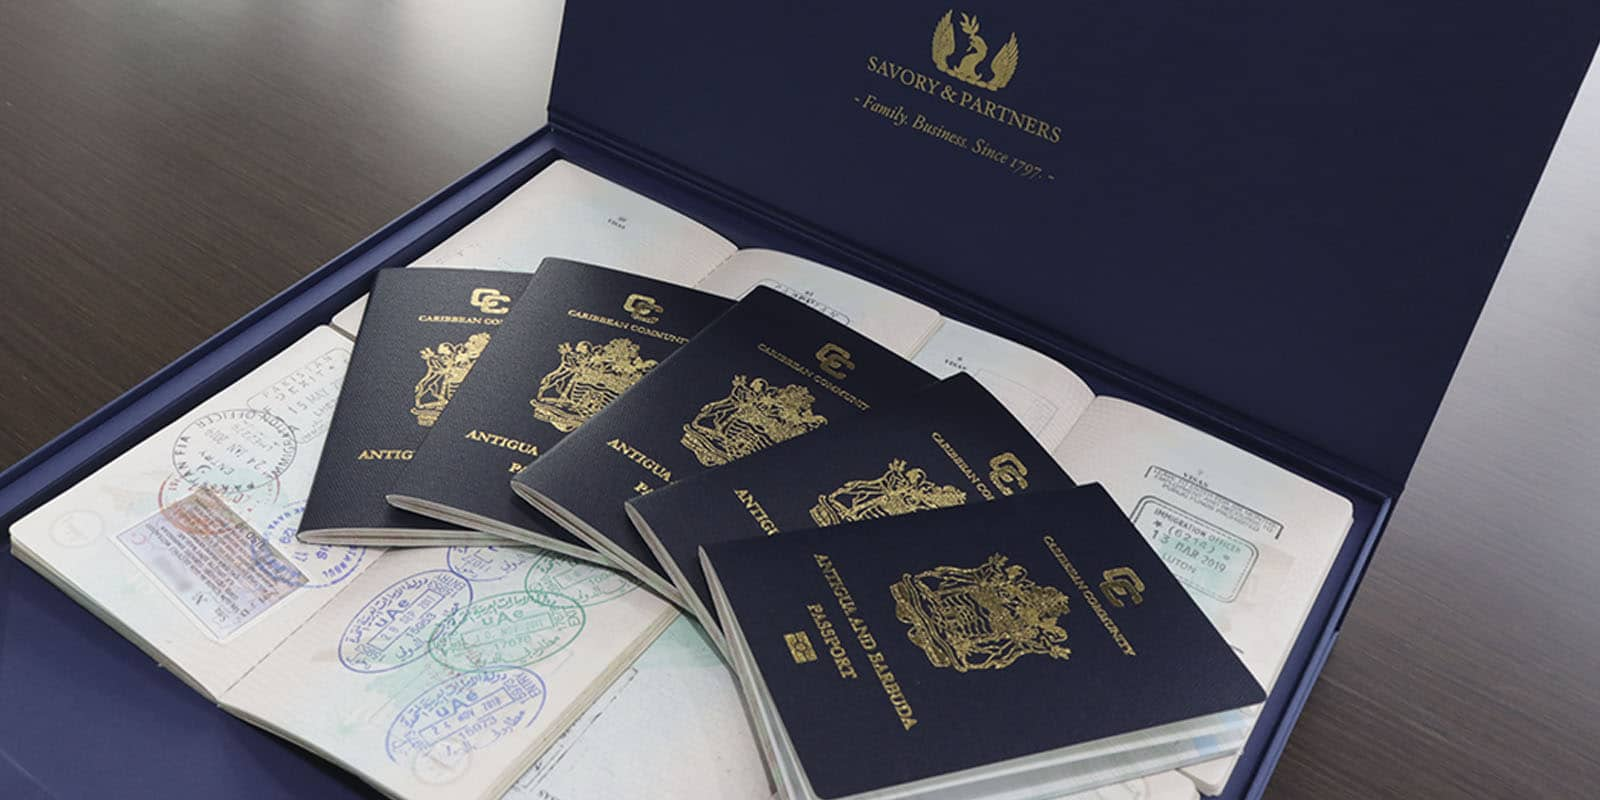 Antigua and Barbuda citizenship by investment program